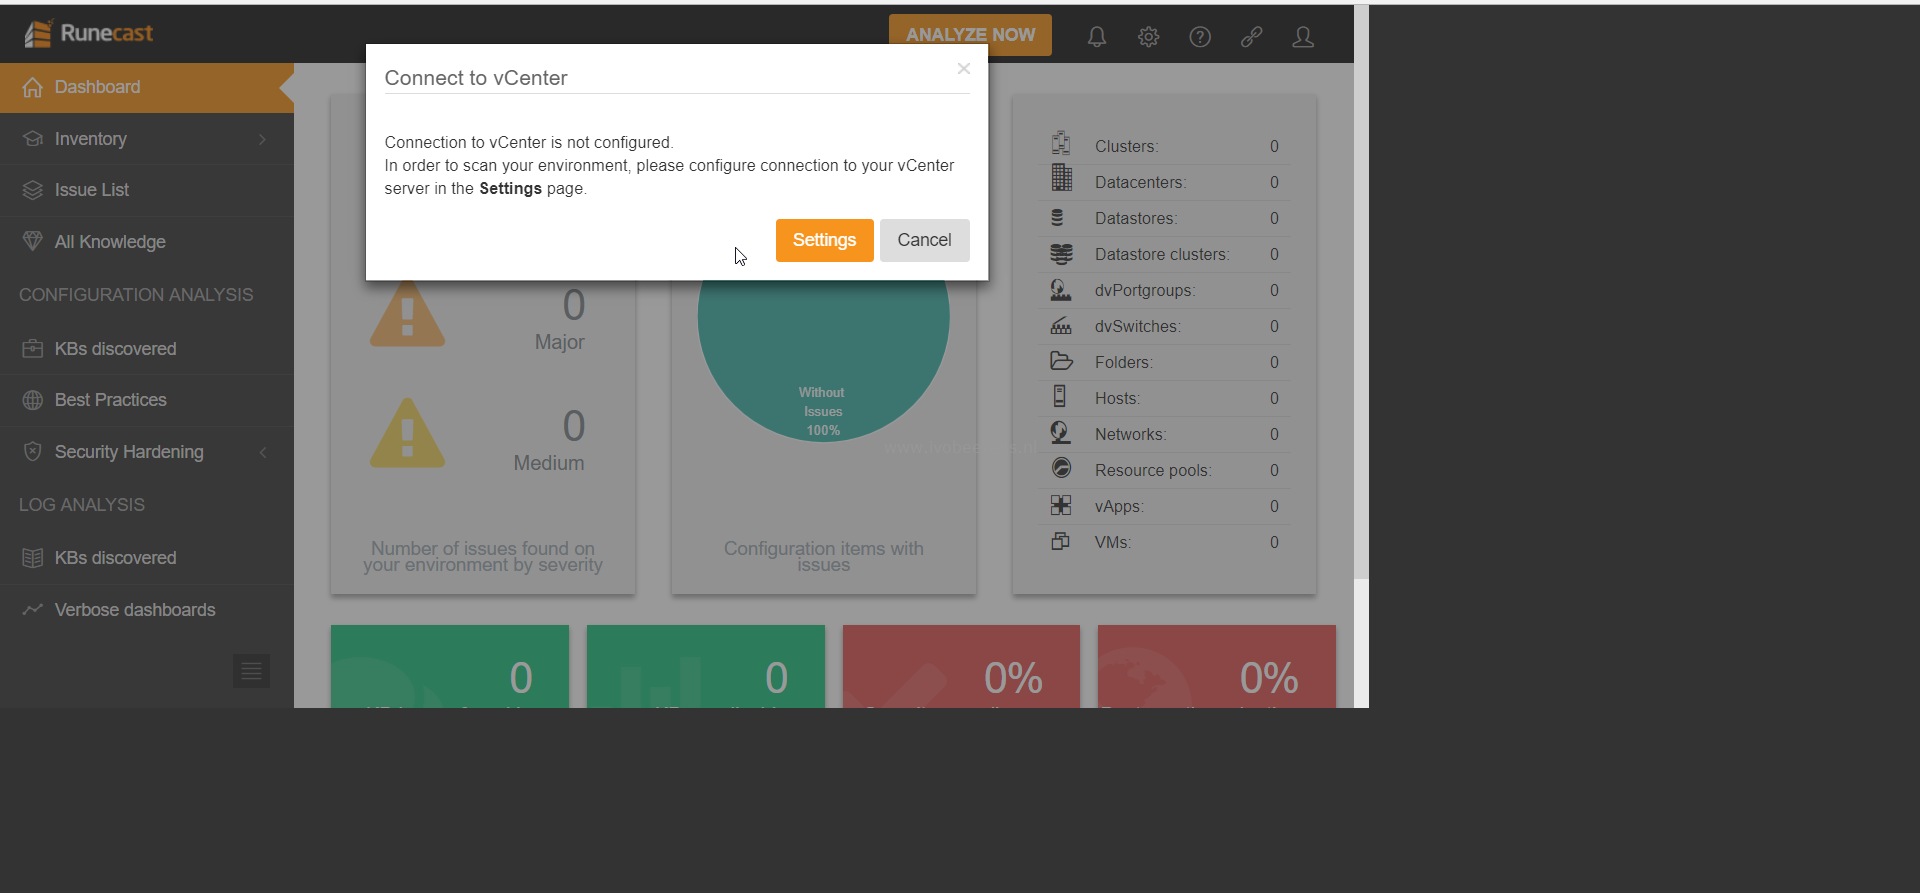 Proactively manage your vSphere environment with Runecast